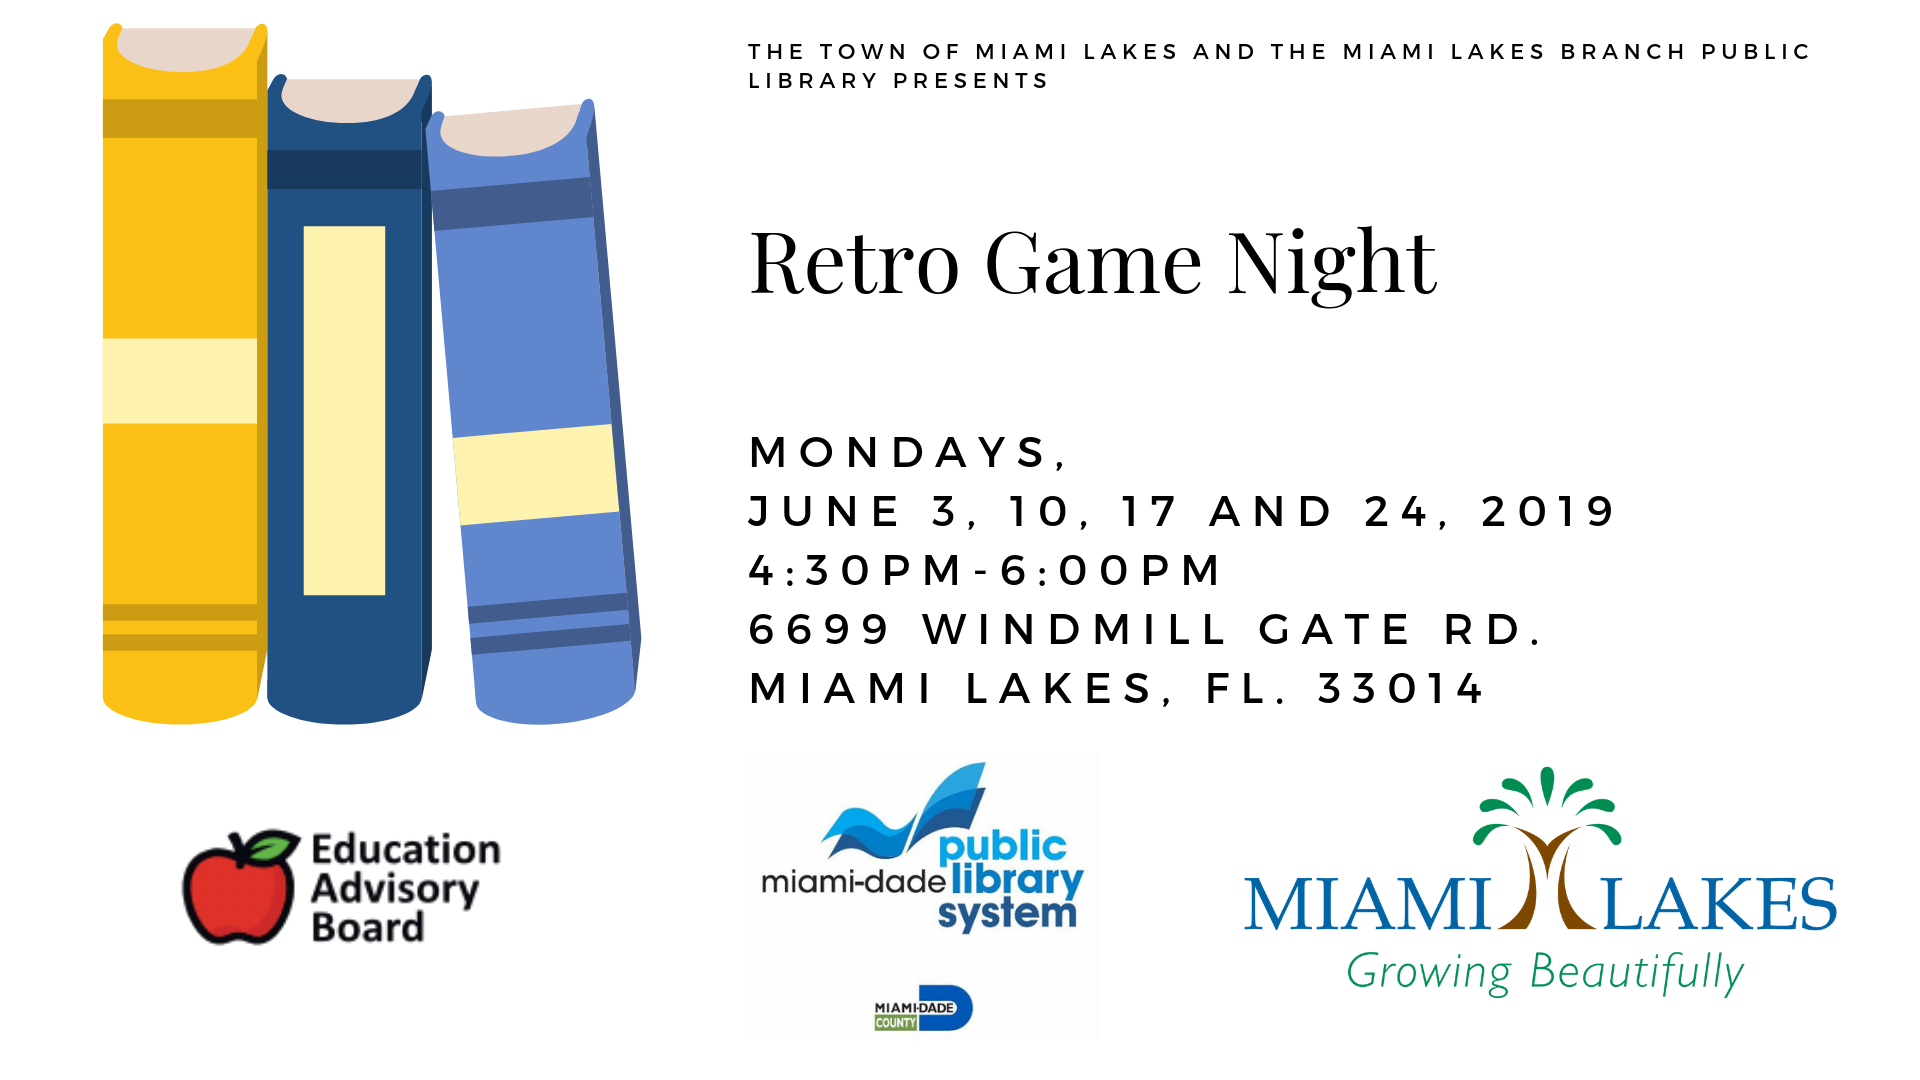 EAB Library Events Retro Game Night